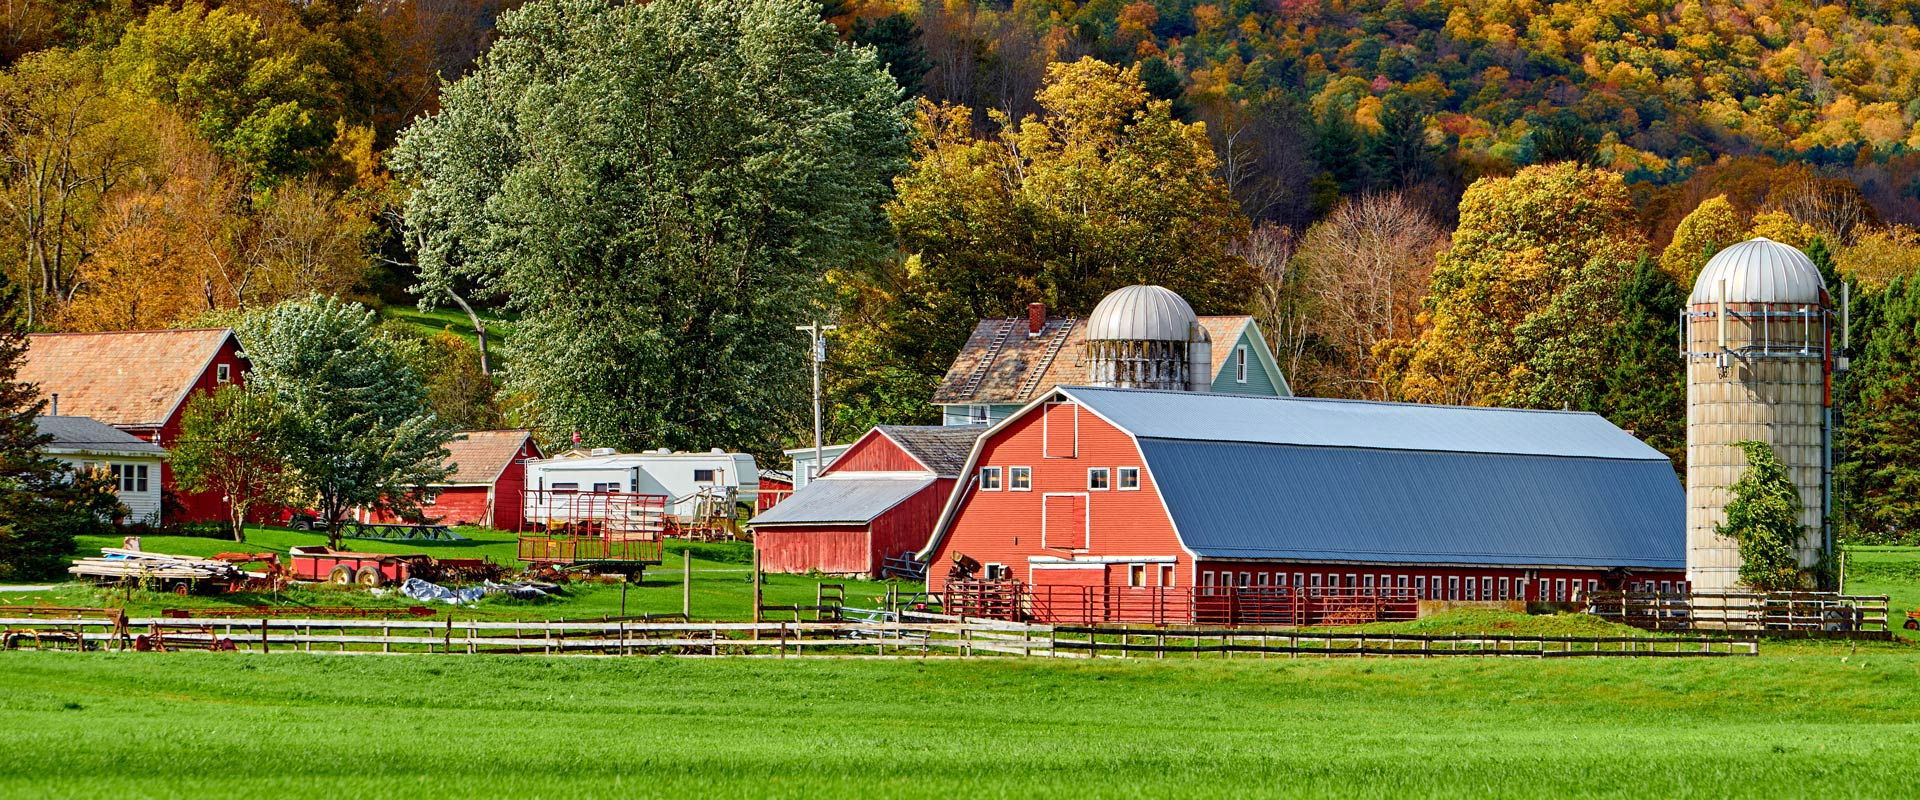 Farm landscape - personal insurance services